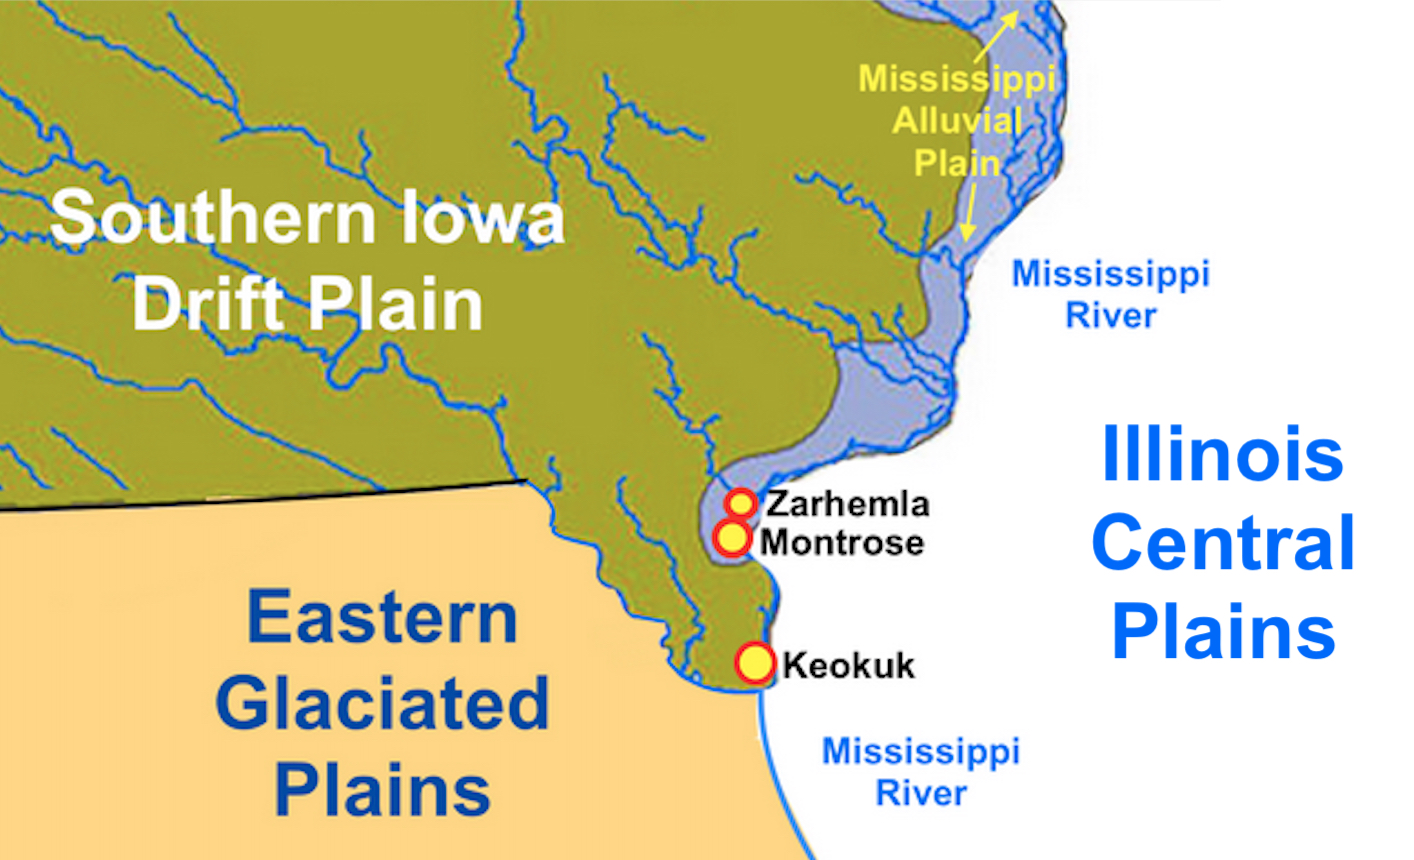 banks of the mississippi could have been the zarahemla of the book of mormon since the sidon was in the far eastern borders of the land of zarahemla